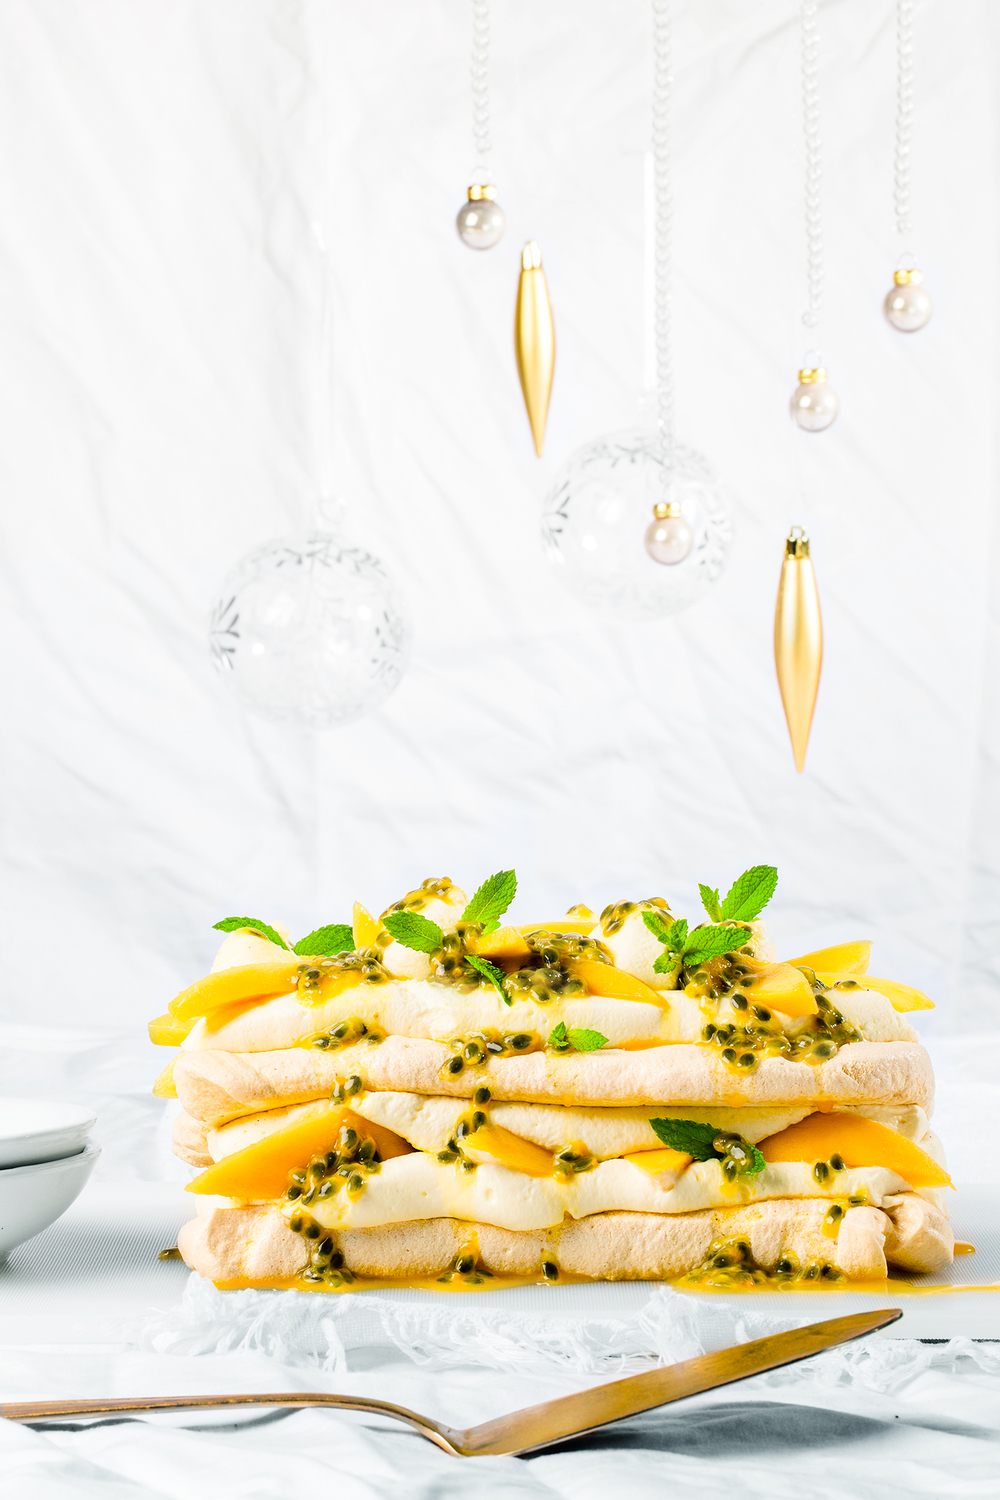 Mango, Passionfruit and Mint Pavlova ,   appeared originally in   Yum. Gluten Free Magazine   Dec Issue.   Recipe and styling by   Cle-ann  , photo by   Hugh Adams  .